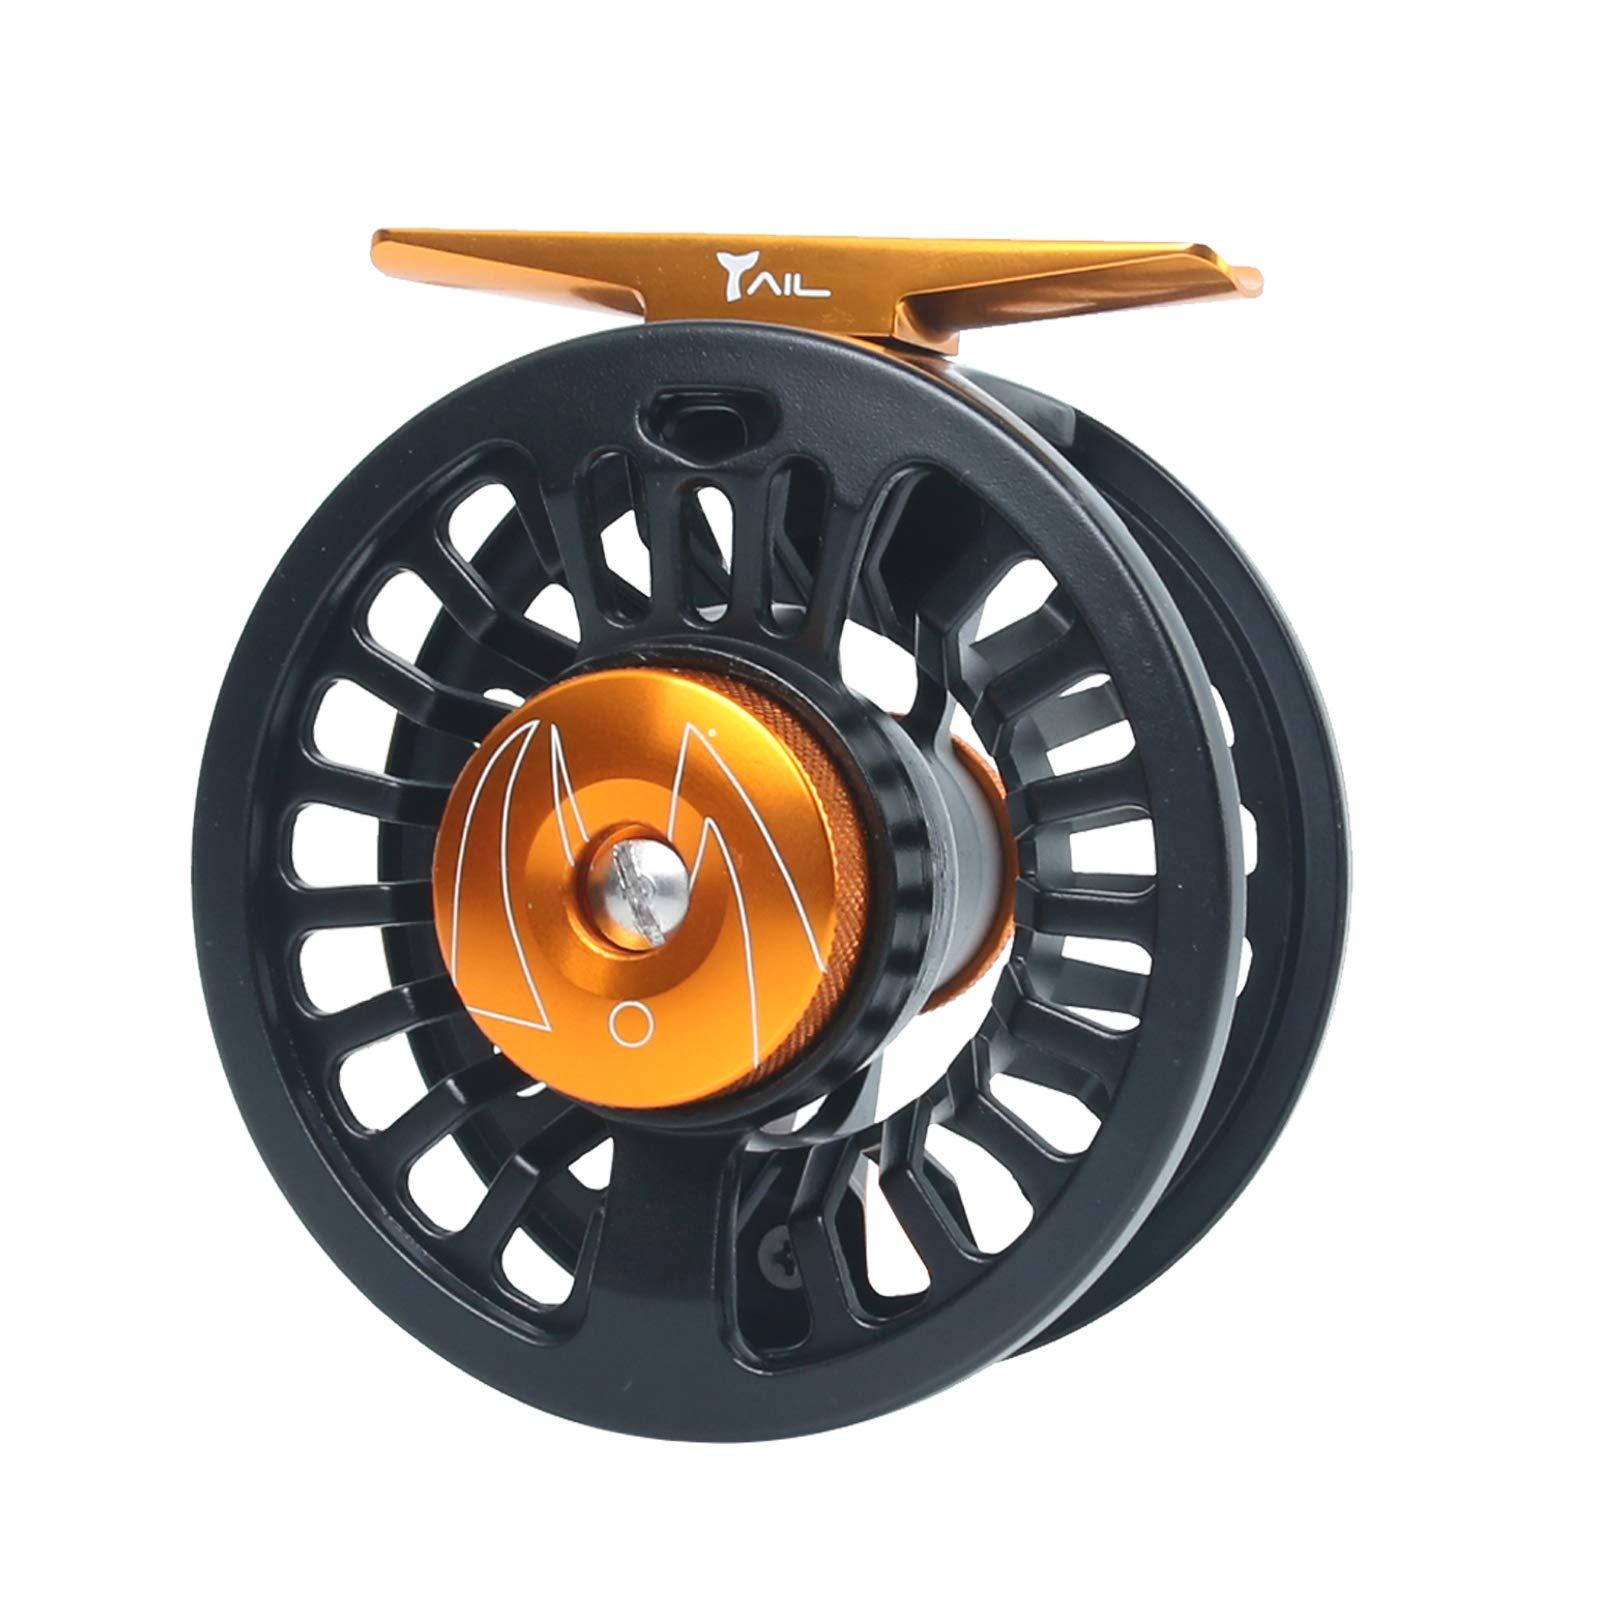 M MAXIMUMCATCH Maxcatch Tail Fly Fishing Reel Waterproof Light Weight Large Arbor Teflon Disc with CNC-machined Aluminum Alloy Body 5/6 7/8wt